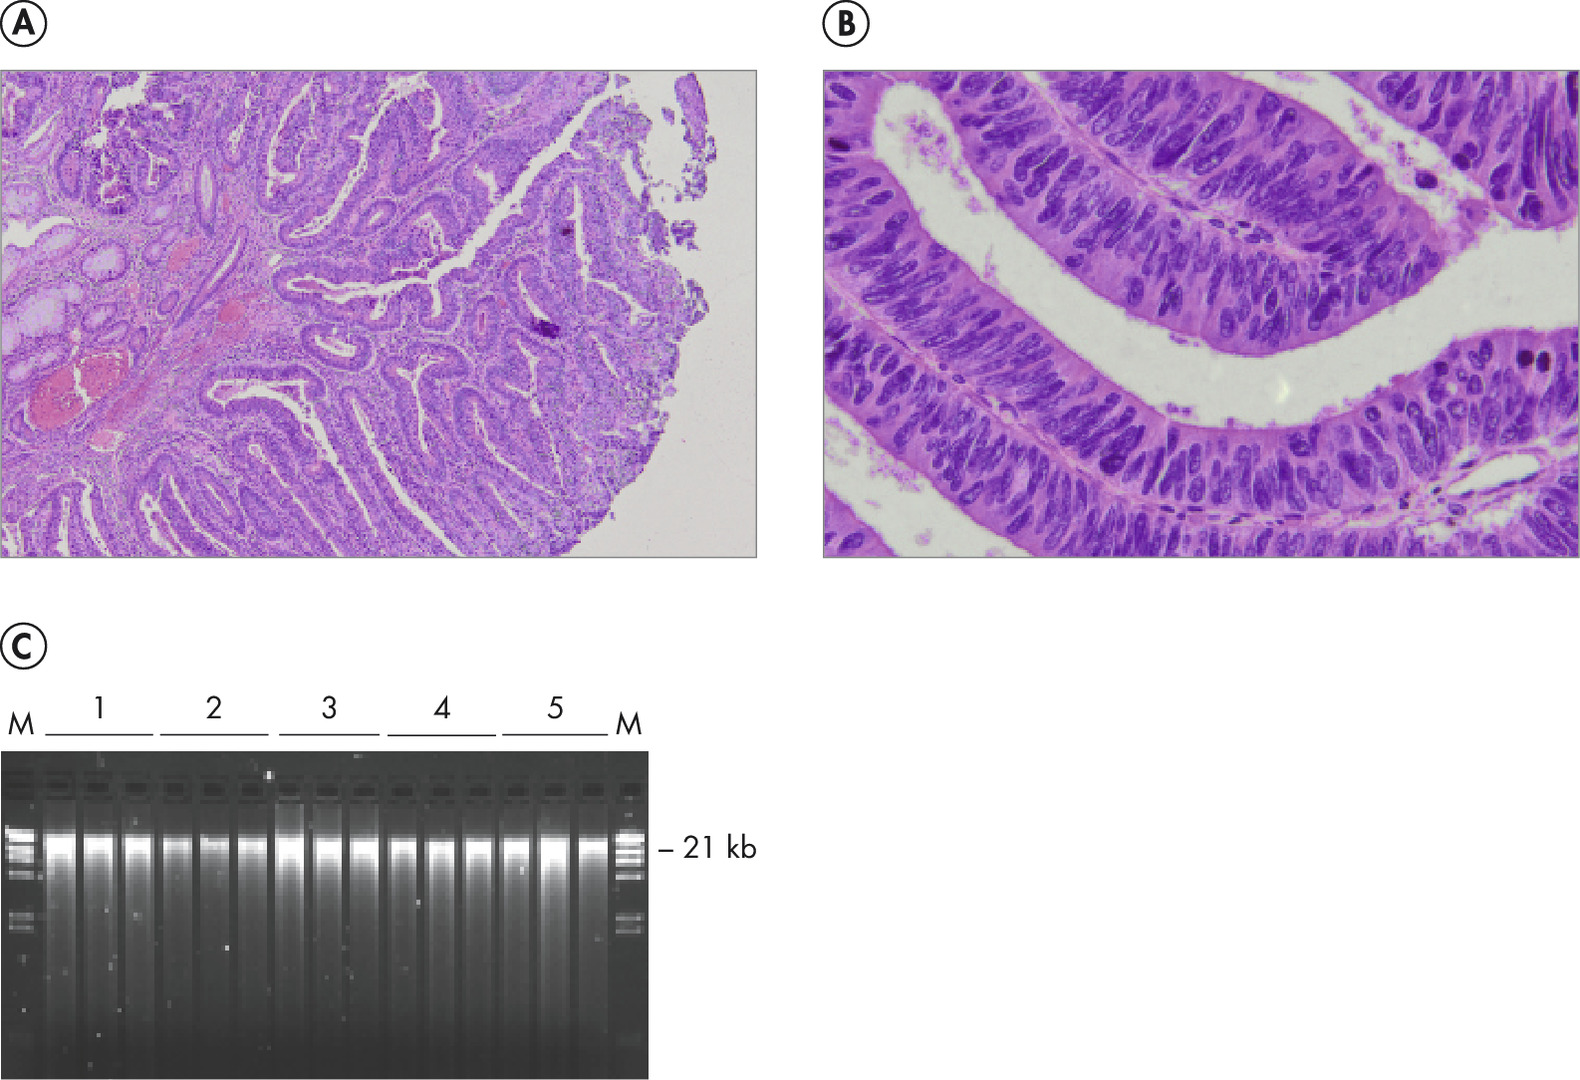 High-quality DNA from PFPE tissue with preserved morphology.